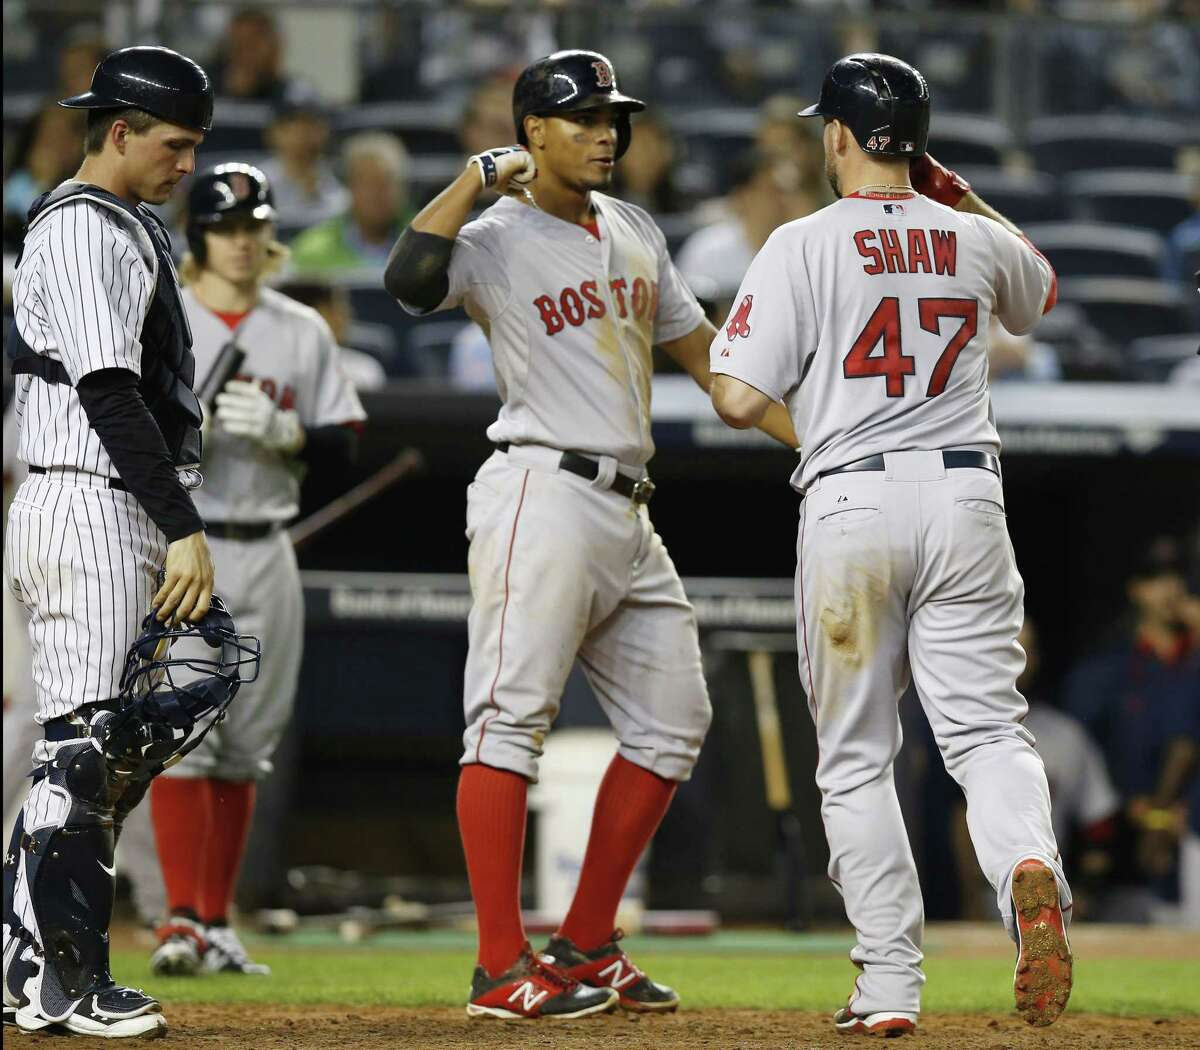 Yankees catcher John Ryan Murphy reacts as Xander Bogaerts, center, greets Red Sox's Travis Shaw (47) after scoring on Shaw's sixth-inning, two-run home run.